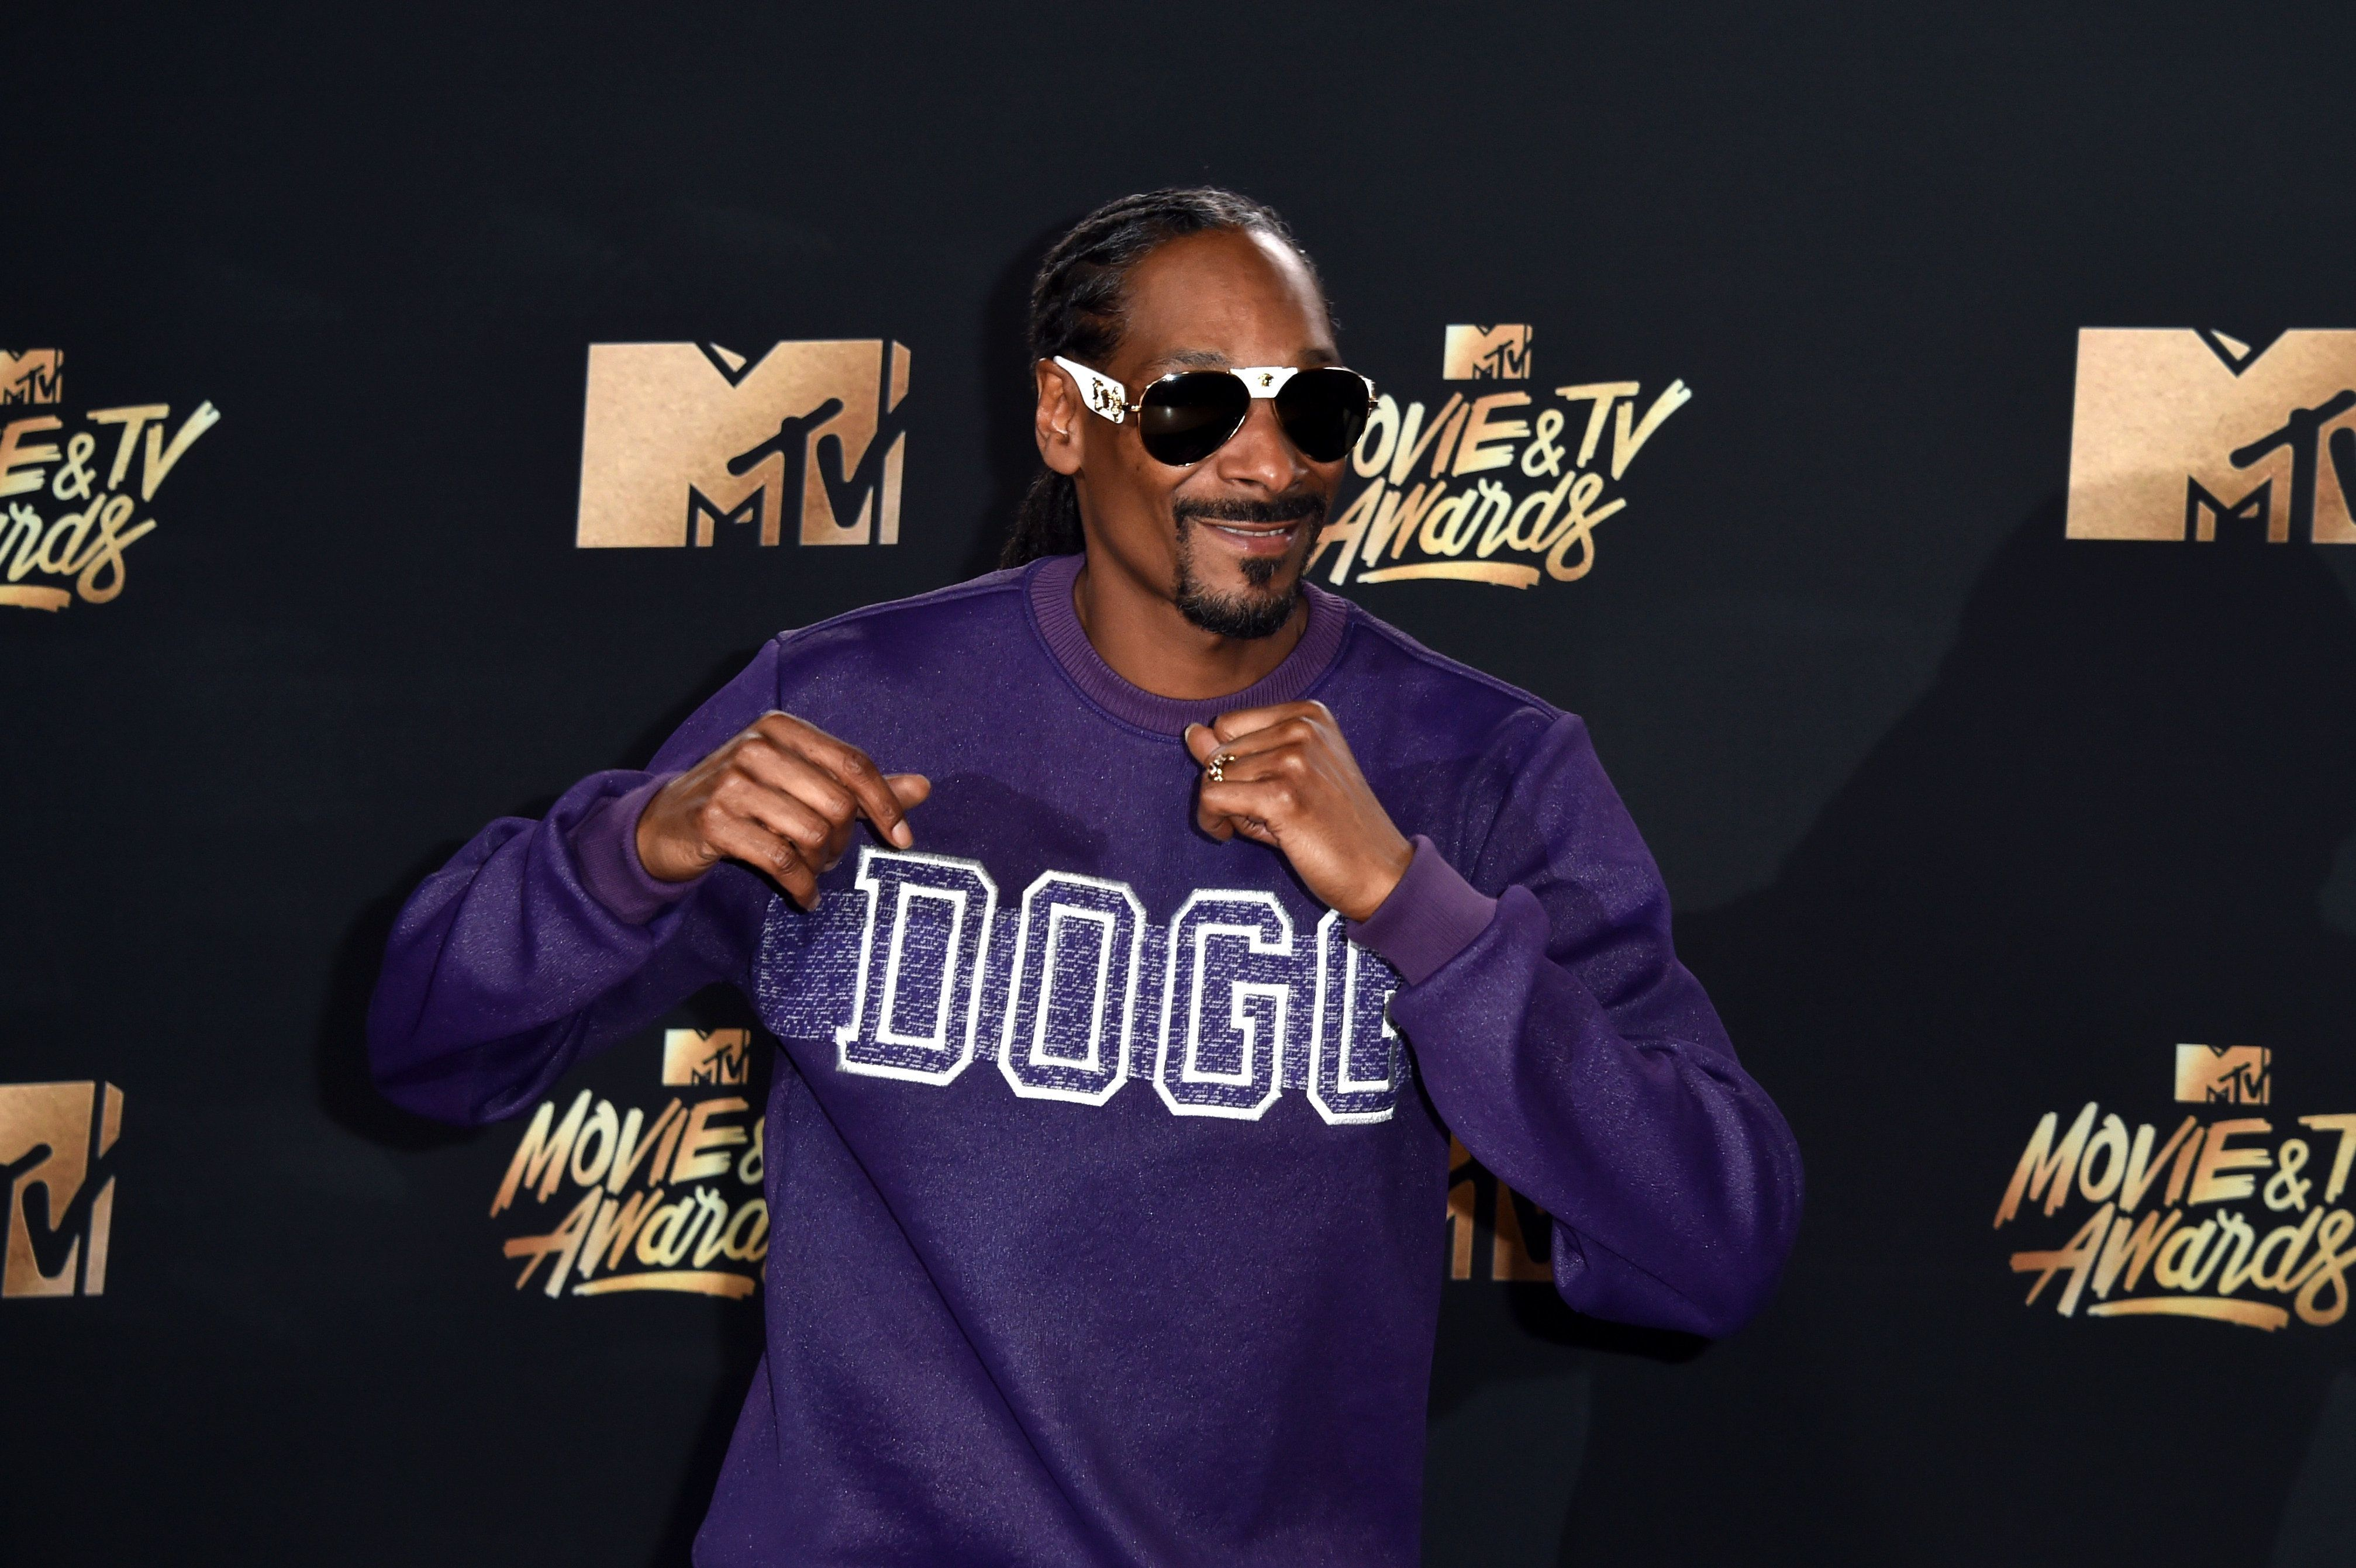 LOS ANGELES, CA - MAY 07:  Snoop Dogg poses in the press room during the 2017 MTV Movie And TV Awards at The Shrine Auditorium on May 7, 2017 in Los Angeles, California.  (Photo by Alberto E. Rodriguez/Getty Images)